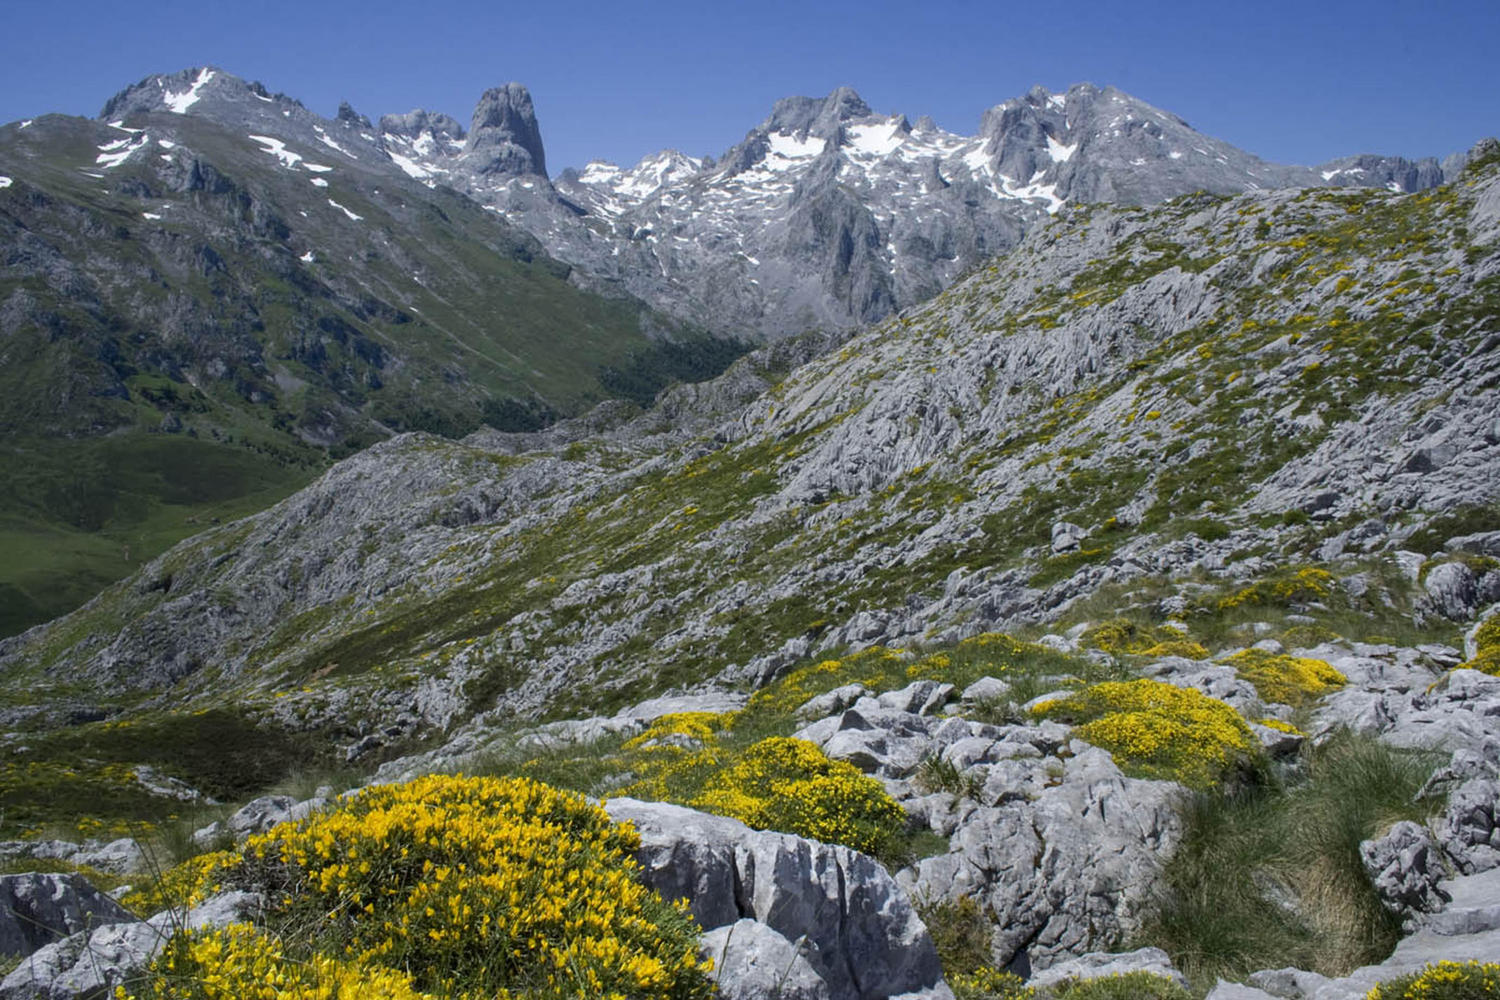 Spring in the high Picos.